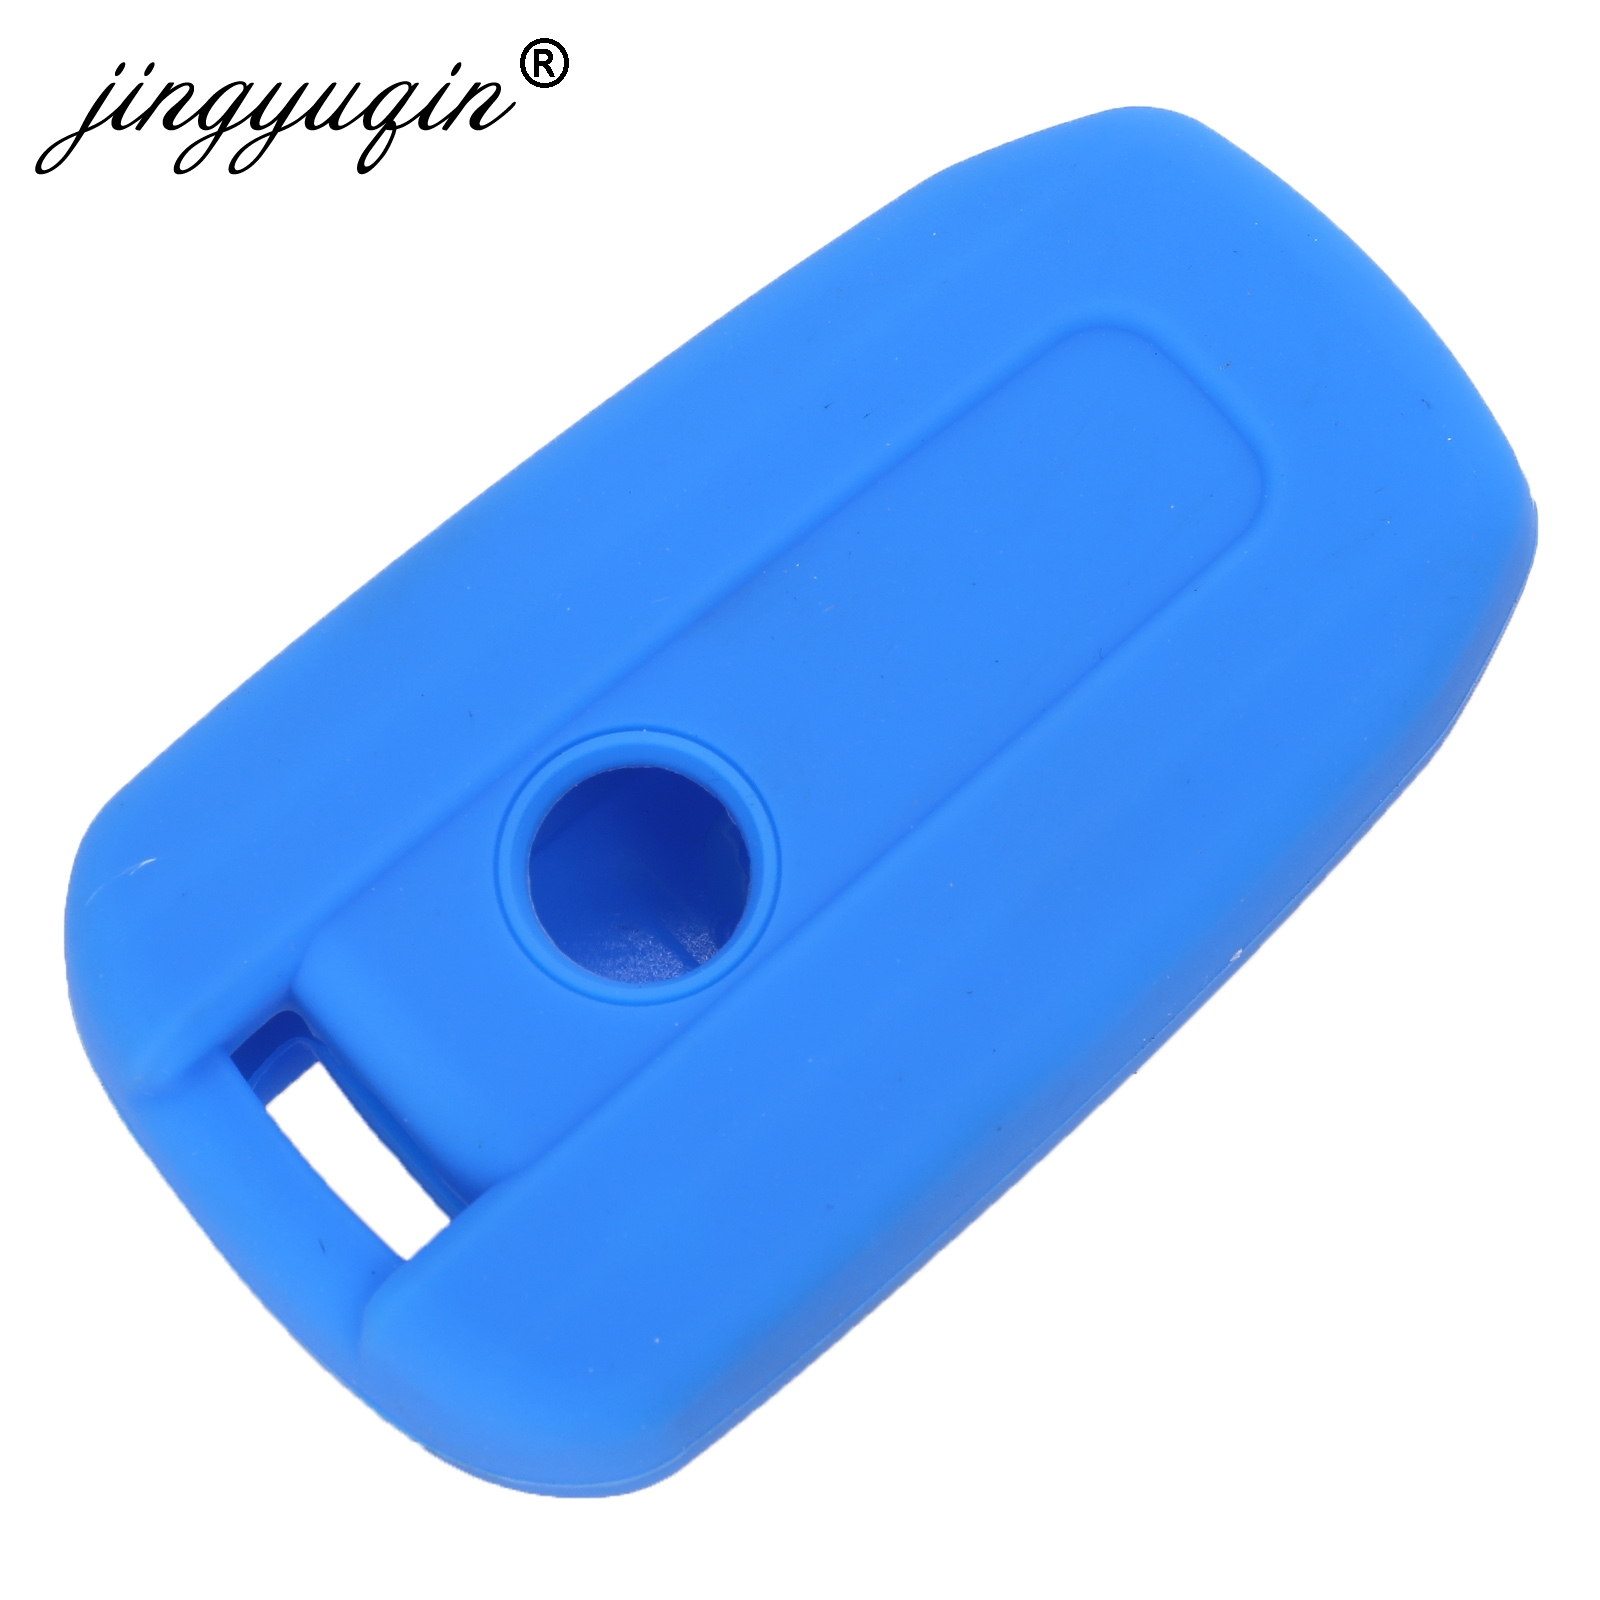 Image 4 - jingyuqin Silicone Car Key Cover FOB for Ssangyong Tivolan Actyon Kyron Korando Rodius Remote Key Case Car styling 3/4 Button-in Key Case for Car from Automobiles & Motorcycles